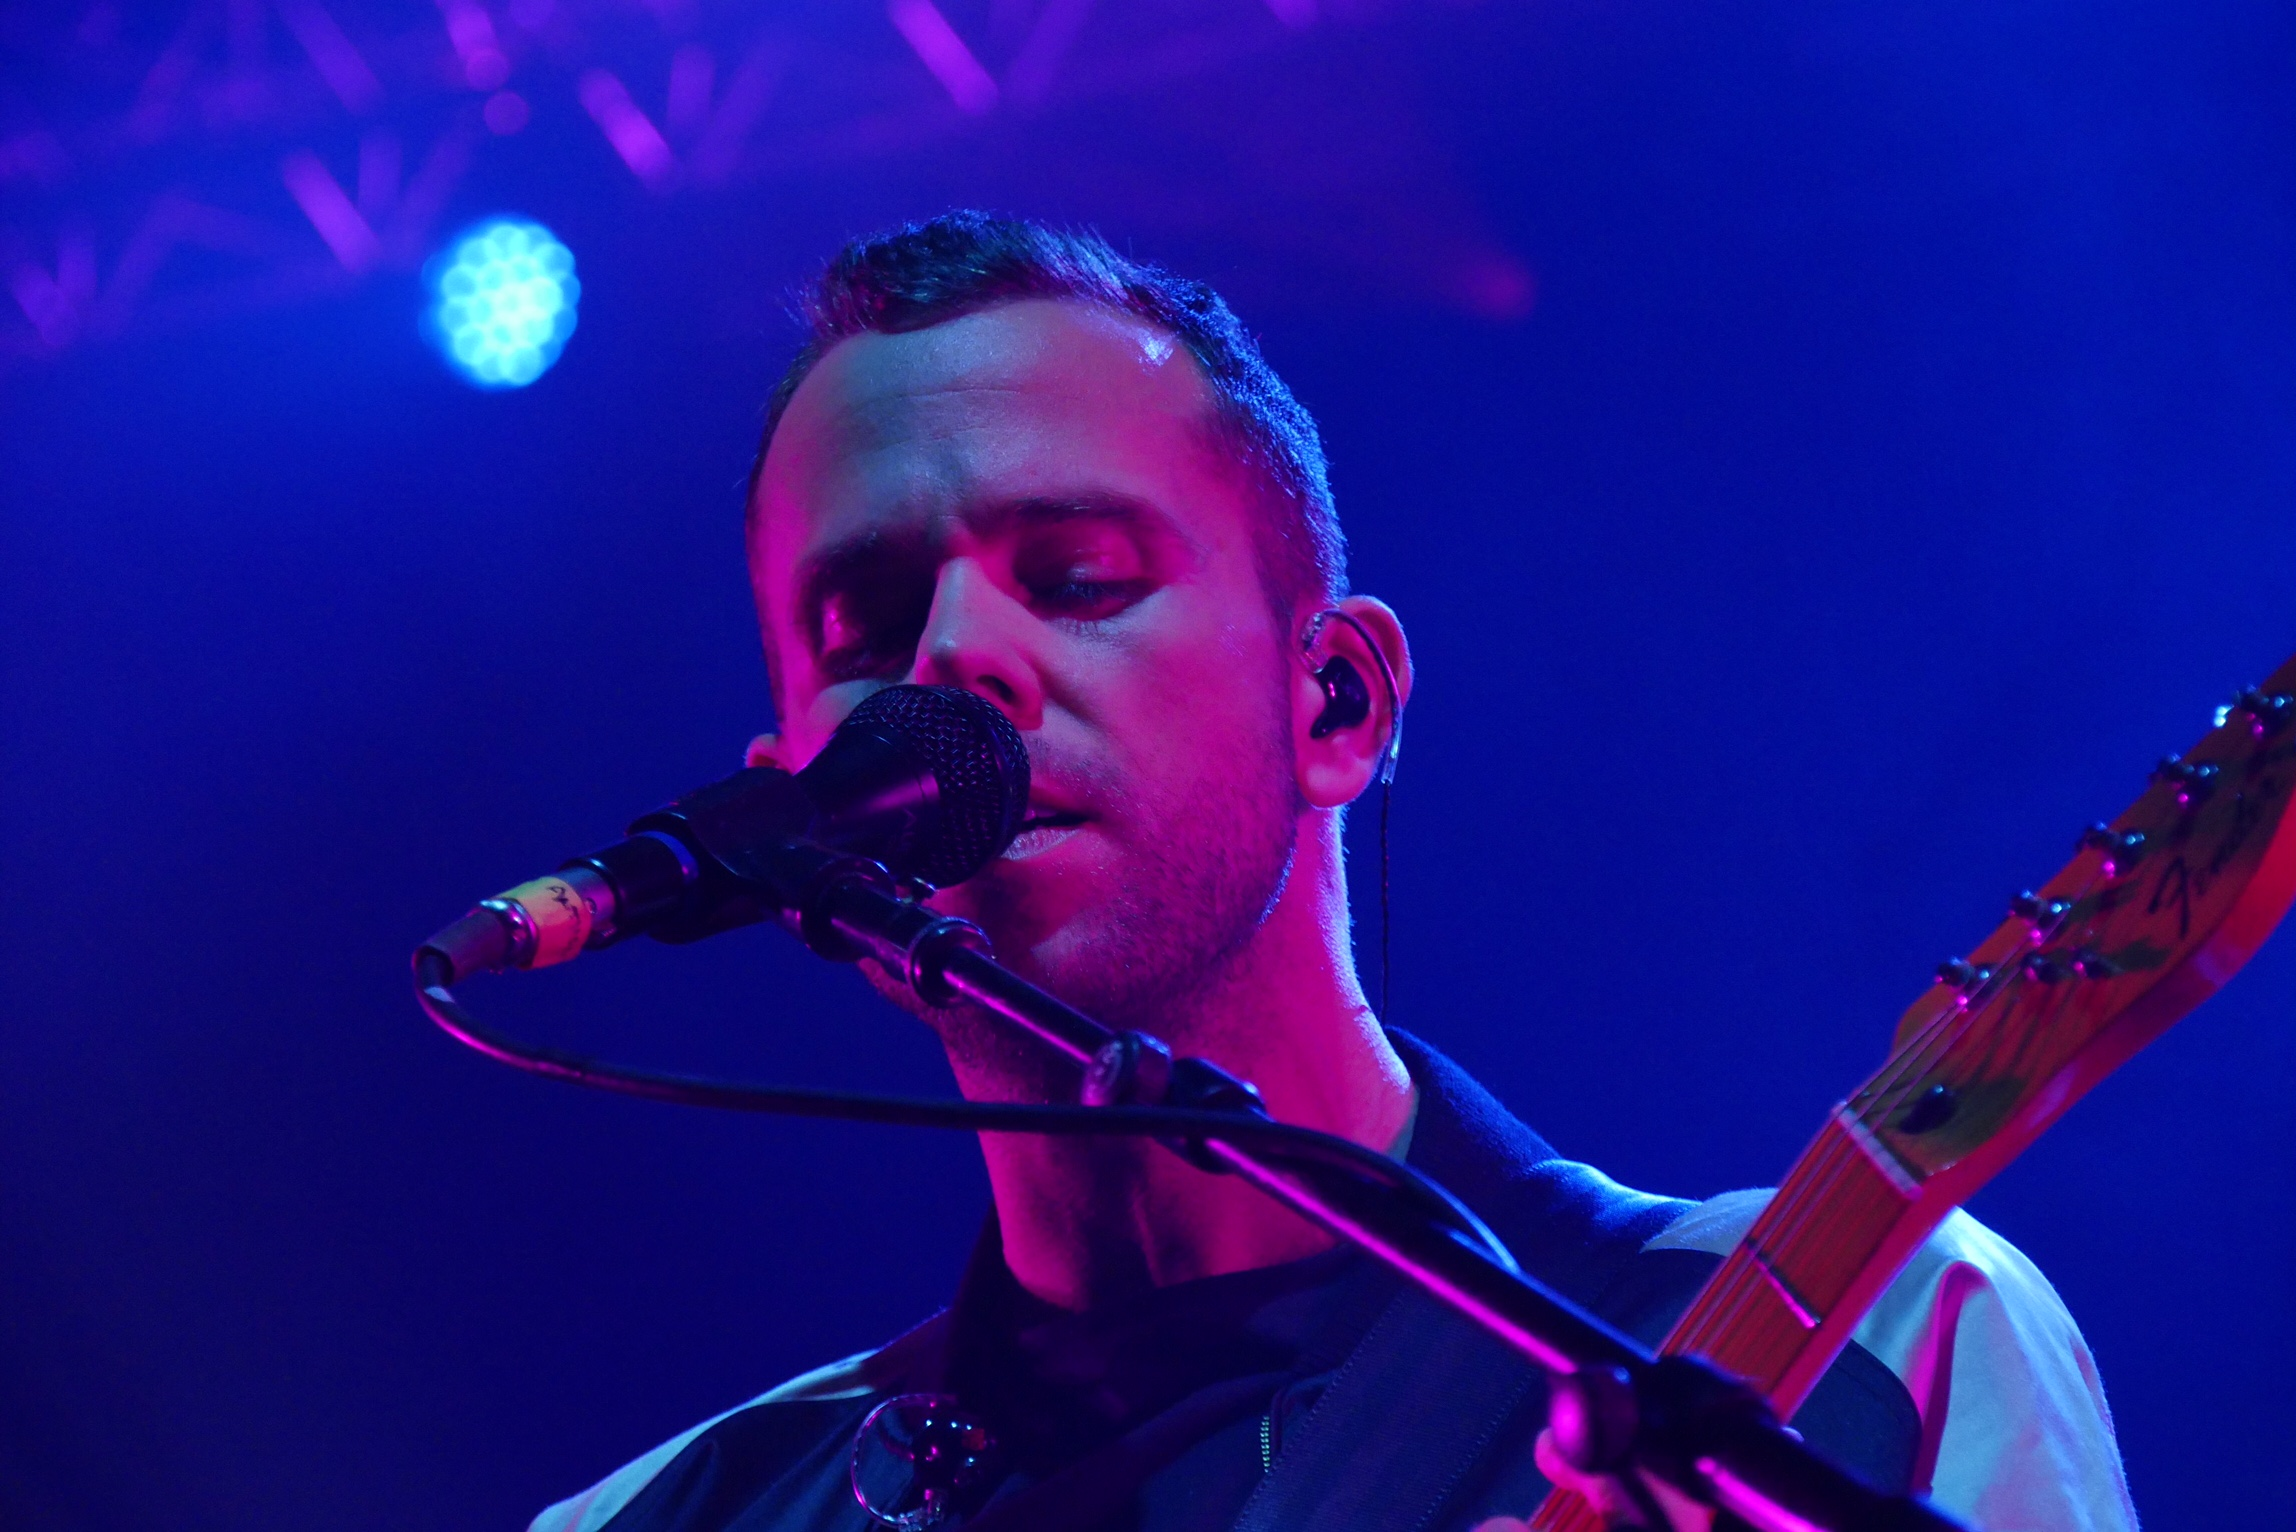 m83-anthony-gonzalez-reunion-junk-tour-live-concert-zenith-paris-photo-usofparis-blog